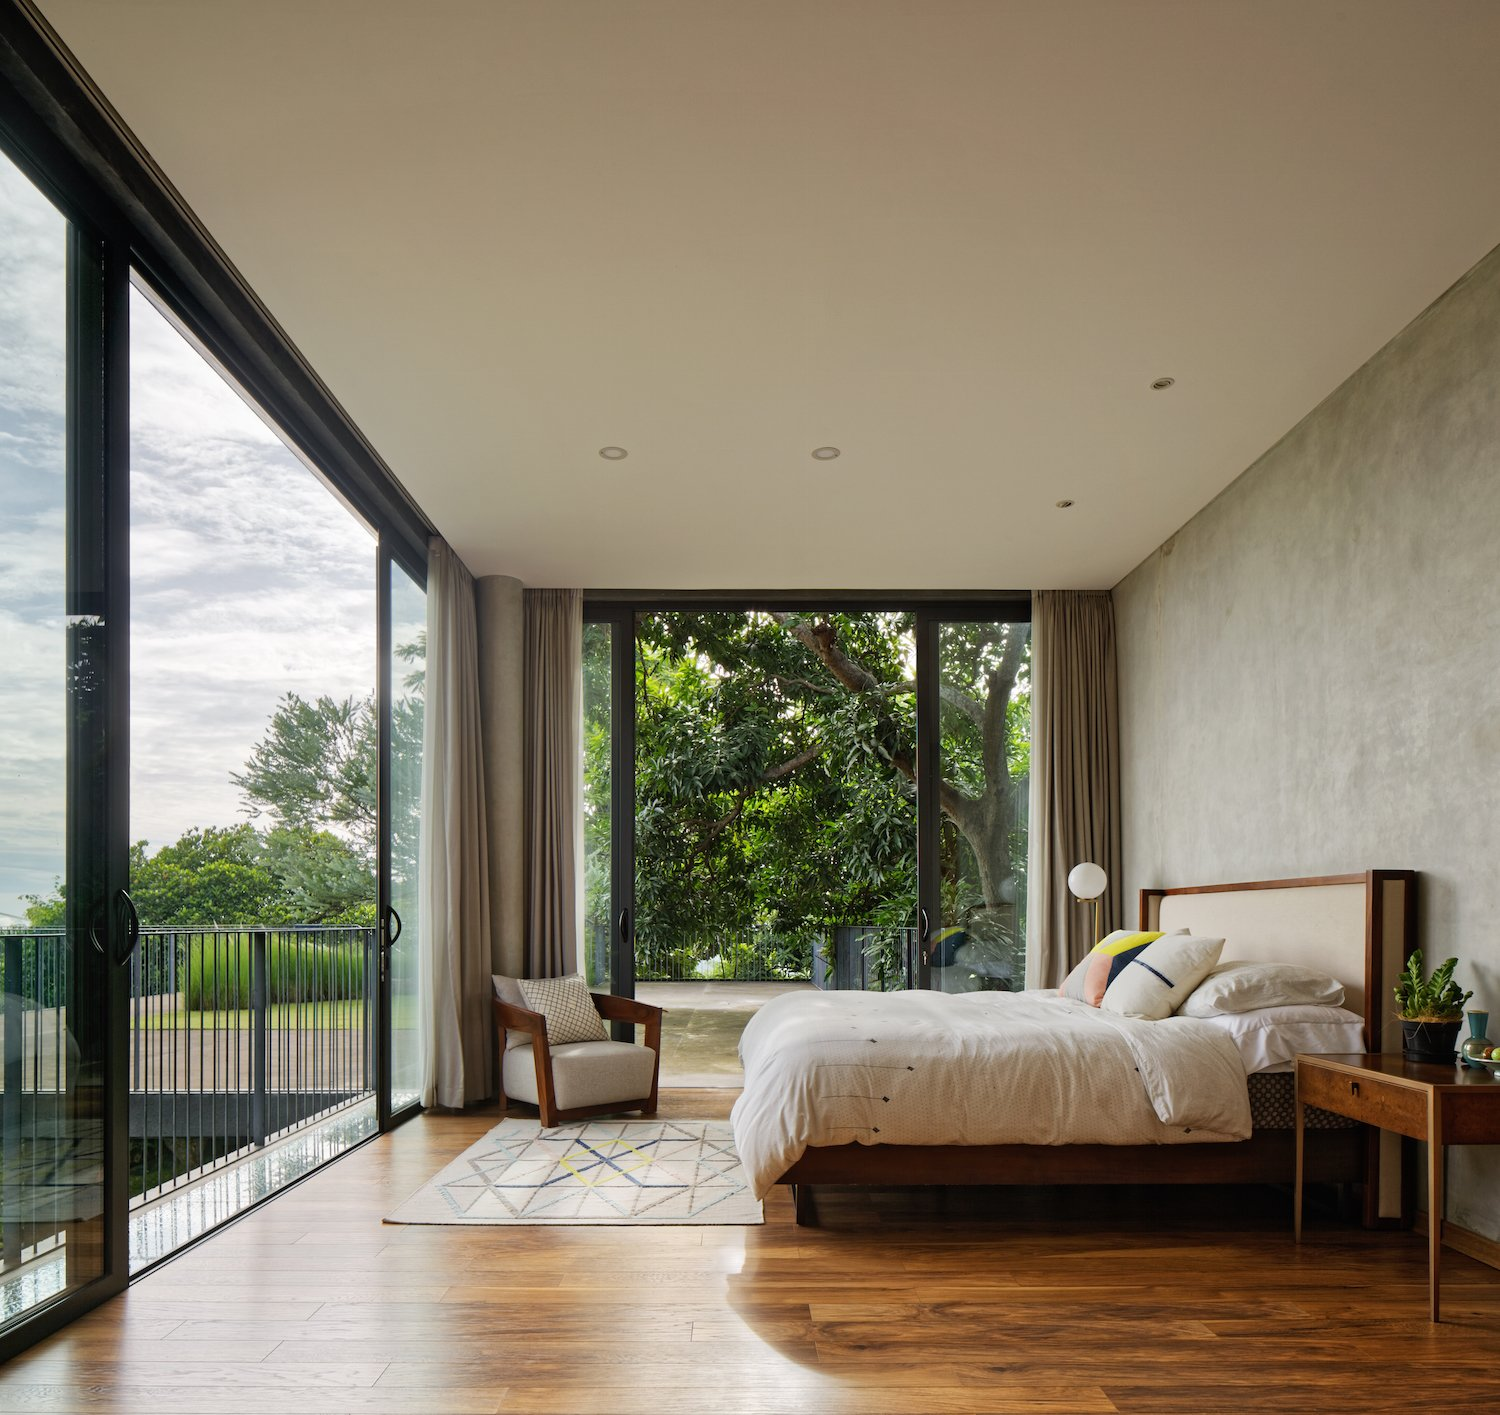 Bedroom, Bed, Chair, Recessed, Night Stands, Rug, Medium Hardwood, Floor, and Lamps The bedroom on the second floor has a treehouse-like feel.  Bedroom Medium Hardwood Floor Night Stands Rug Photos from This Concrete Abode Embraces Indonesia's Tropical Climate